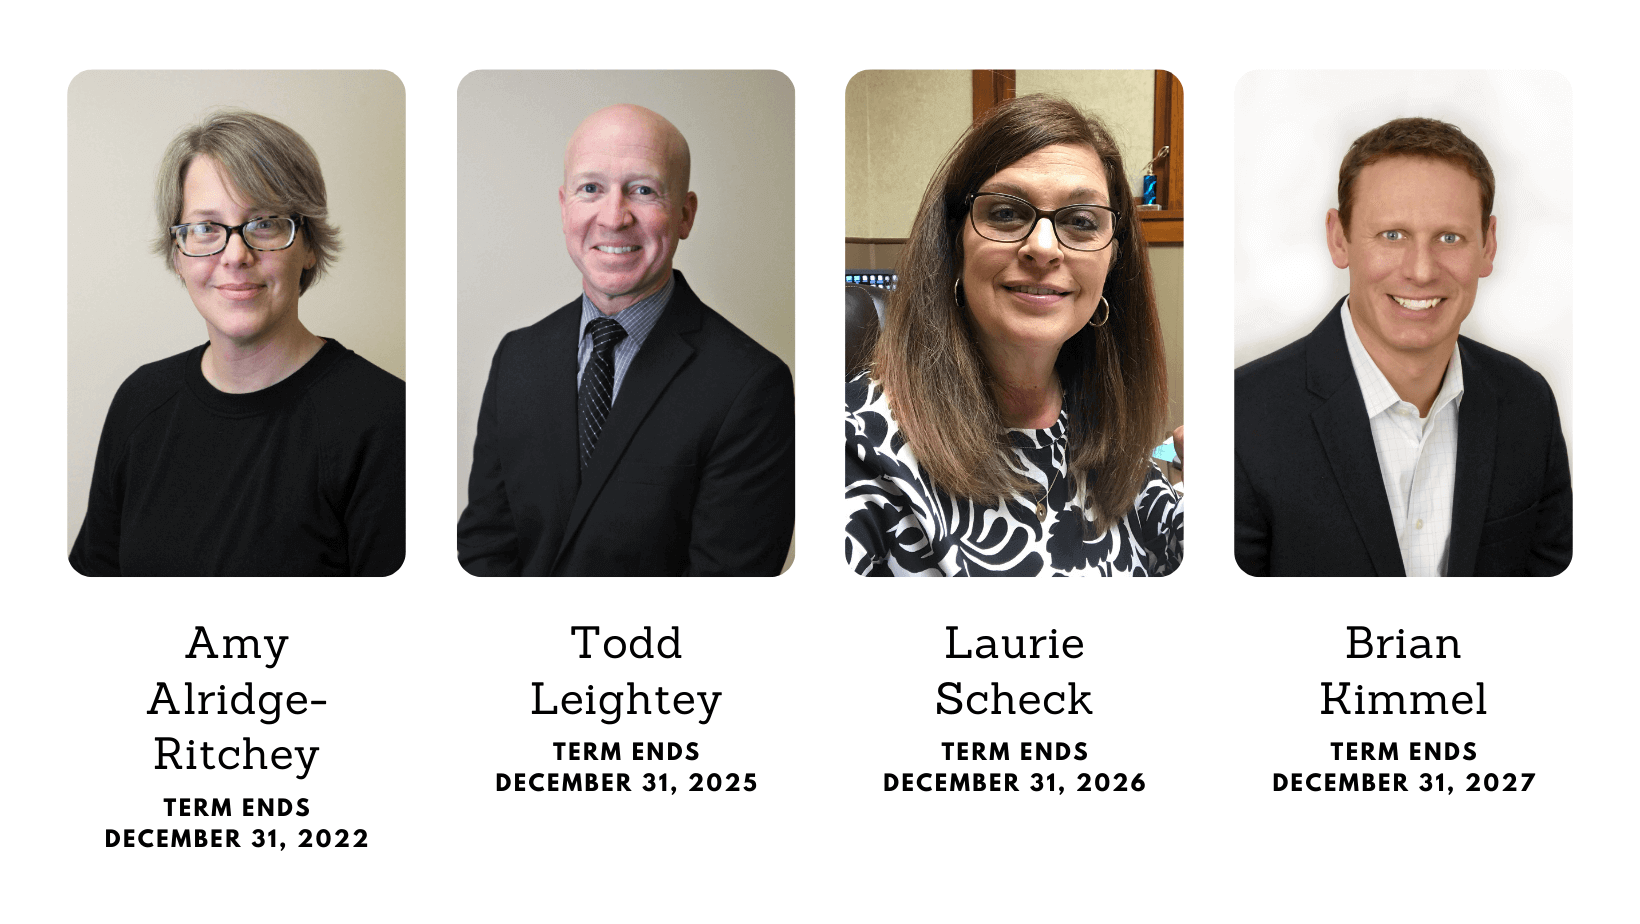 Board of Trustees members Amy Alridge-Ritchey, Todd Leightey, Laurie Scheck, Brian Kimmel